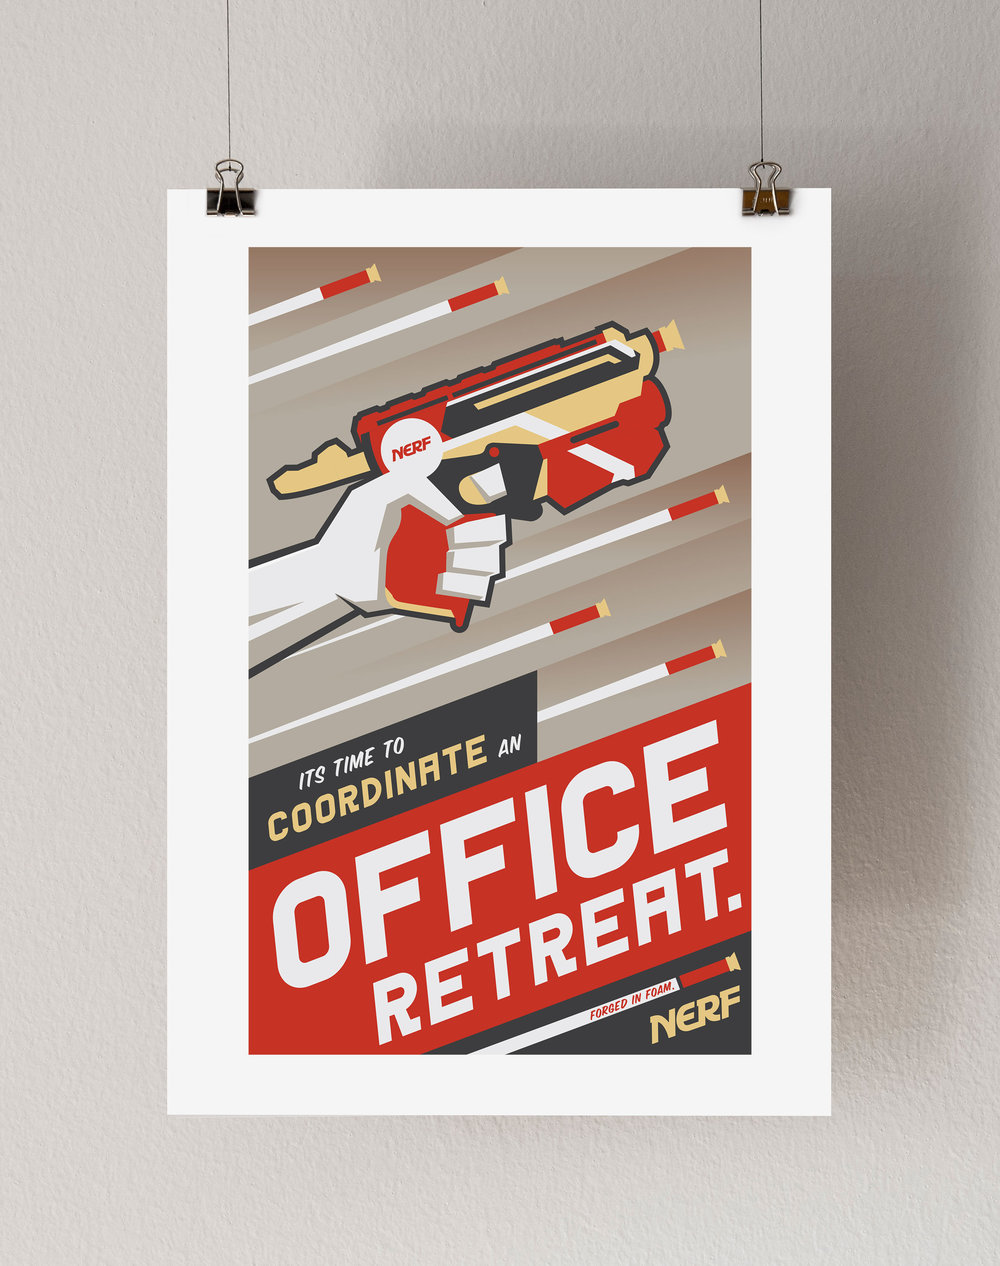 Illustrations_Posters_mockup_nerf2.jpg